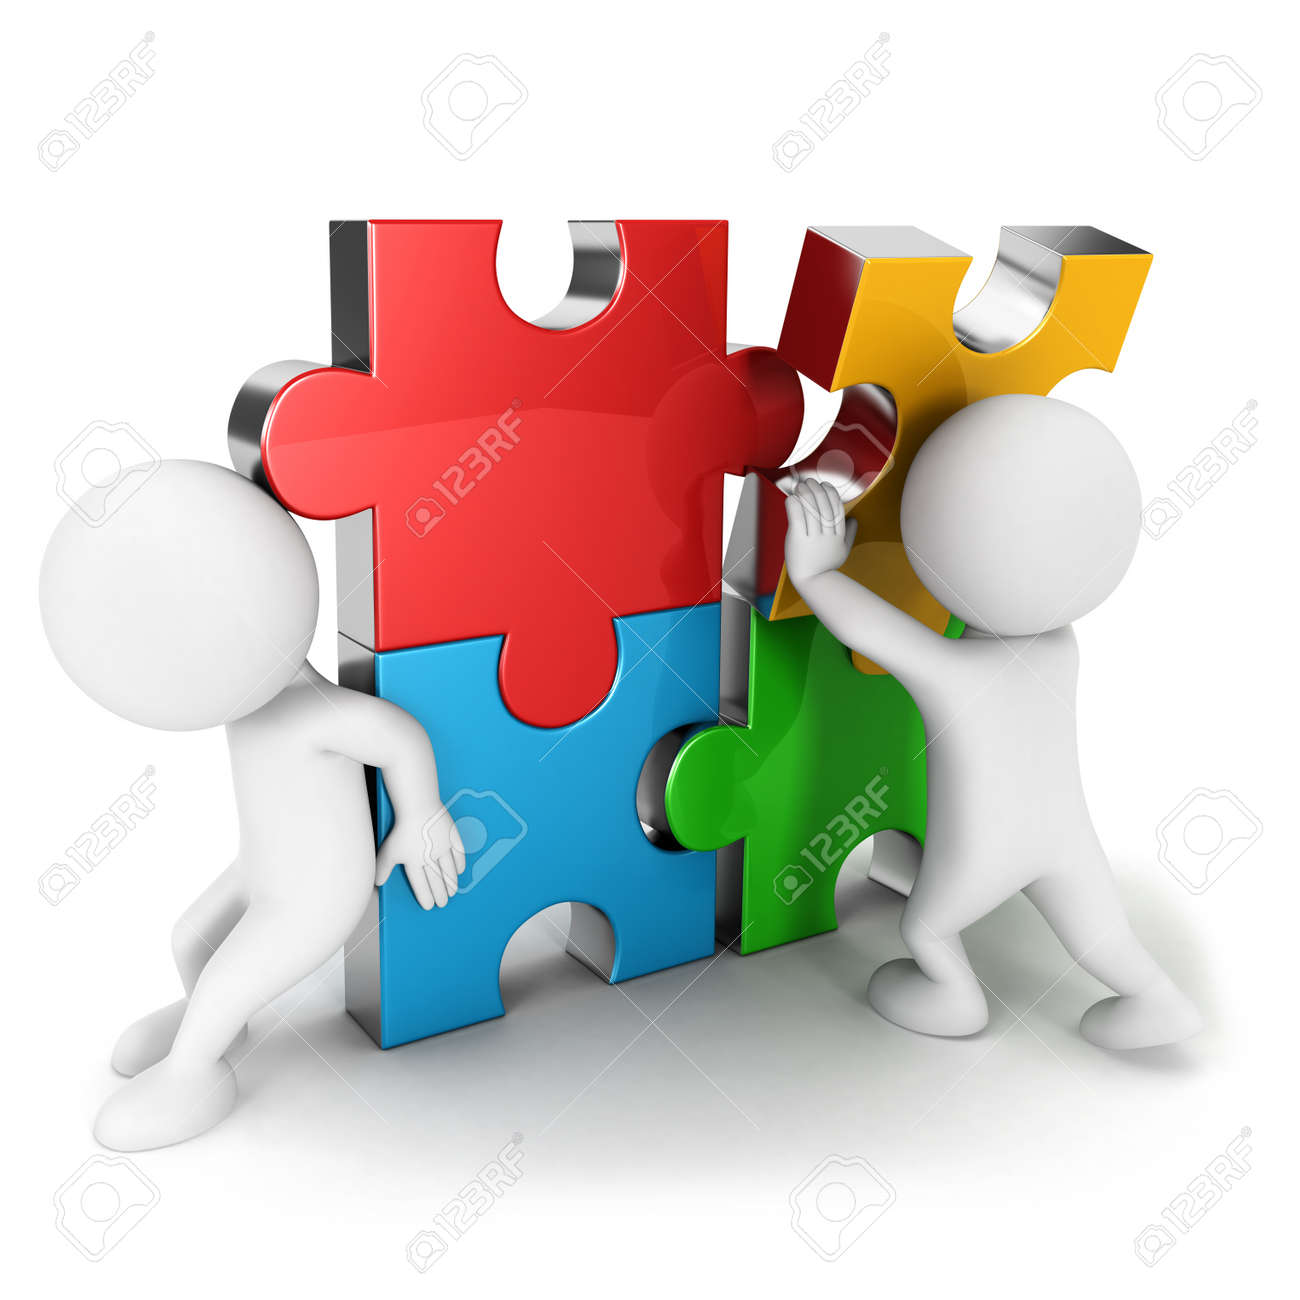 3d White People Work Together Assemble Four Color Puzzle Piece Isolated Background